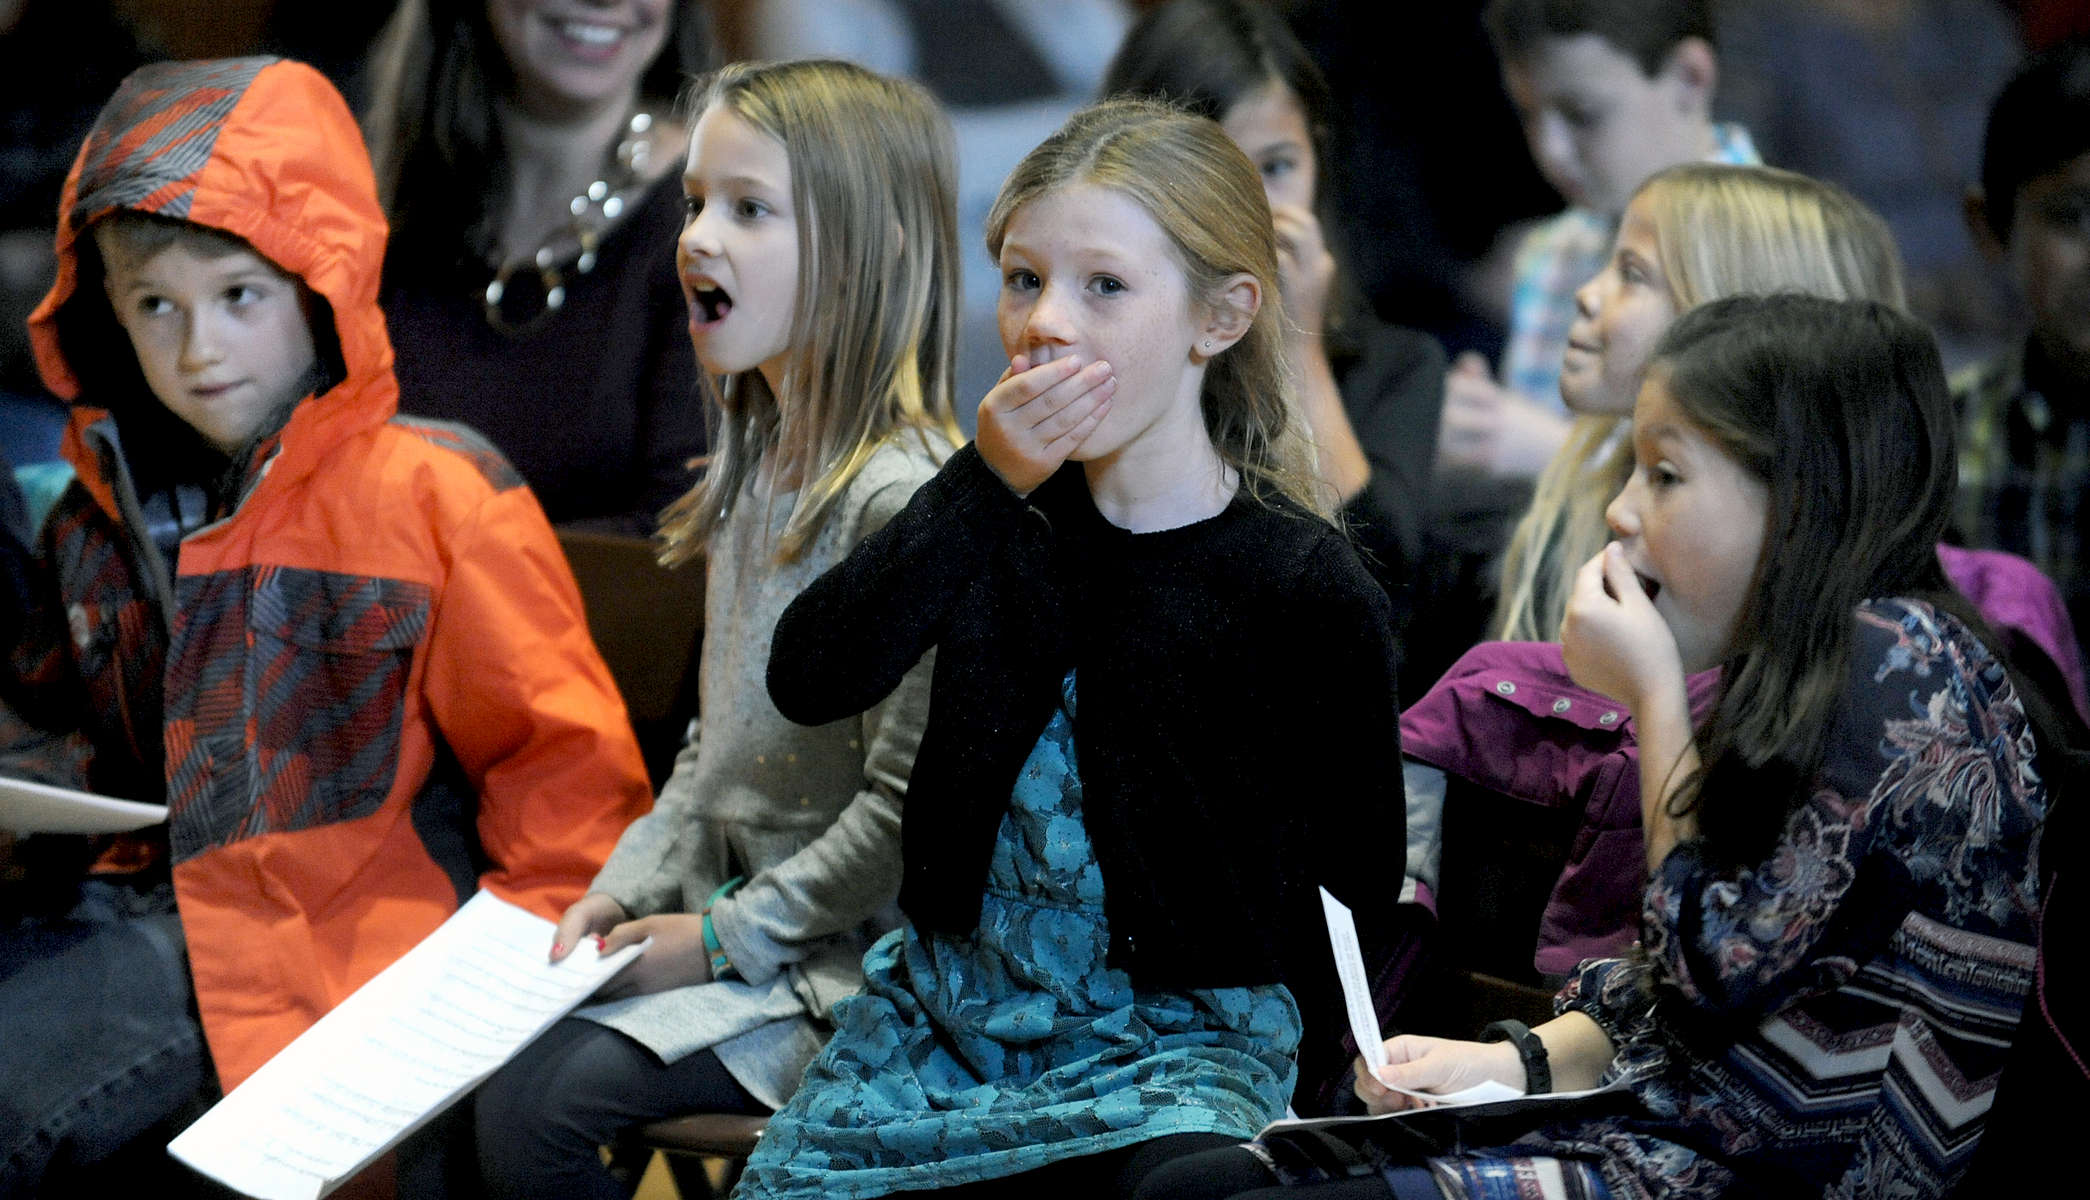 11/30/17--  ARLINGTON--   Stratton School third graders react to a tie vote on Article 1 - Public Water Fountains, at the Town of Stratton Annual Town Meeting in Arlington Town Hall Thursday morning. From left: Charles Dobbs, Lydia Rauh, Anna Vakoc, and Bridget Precourt. [Wicked Local Staff Photo/Art Illman]